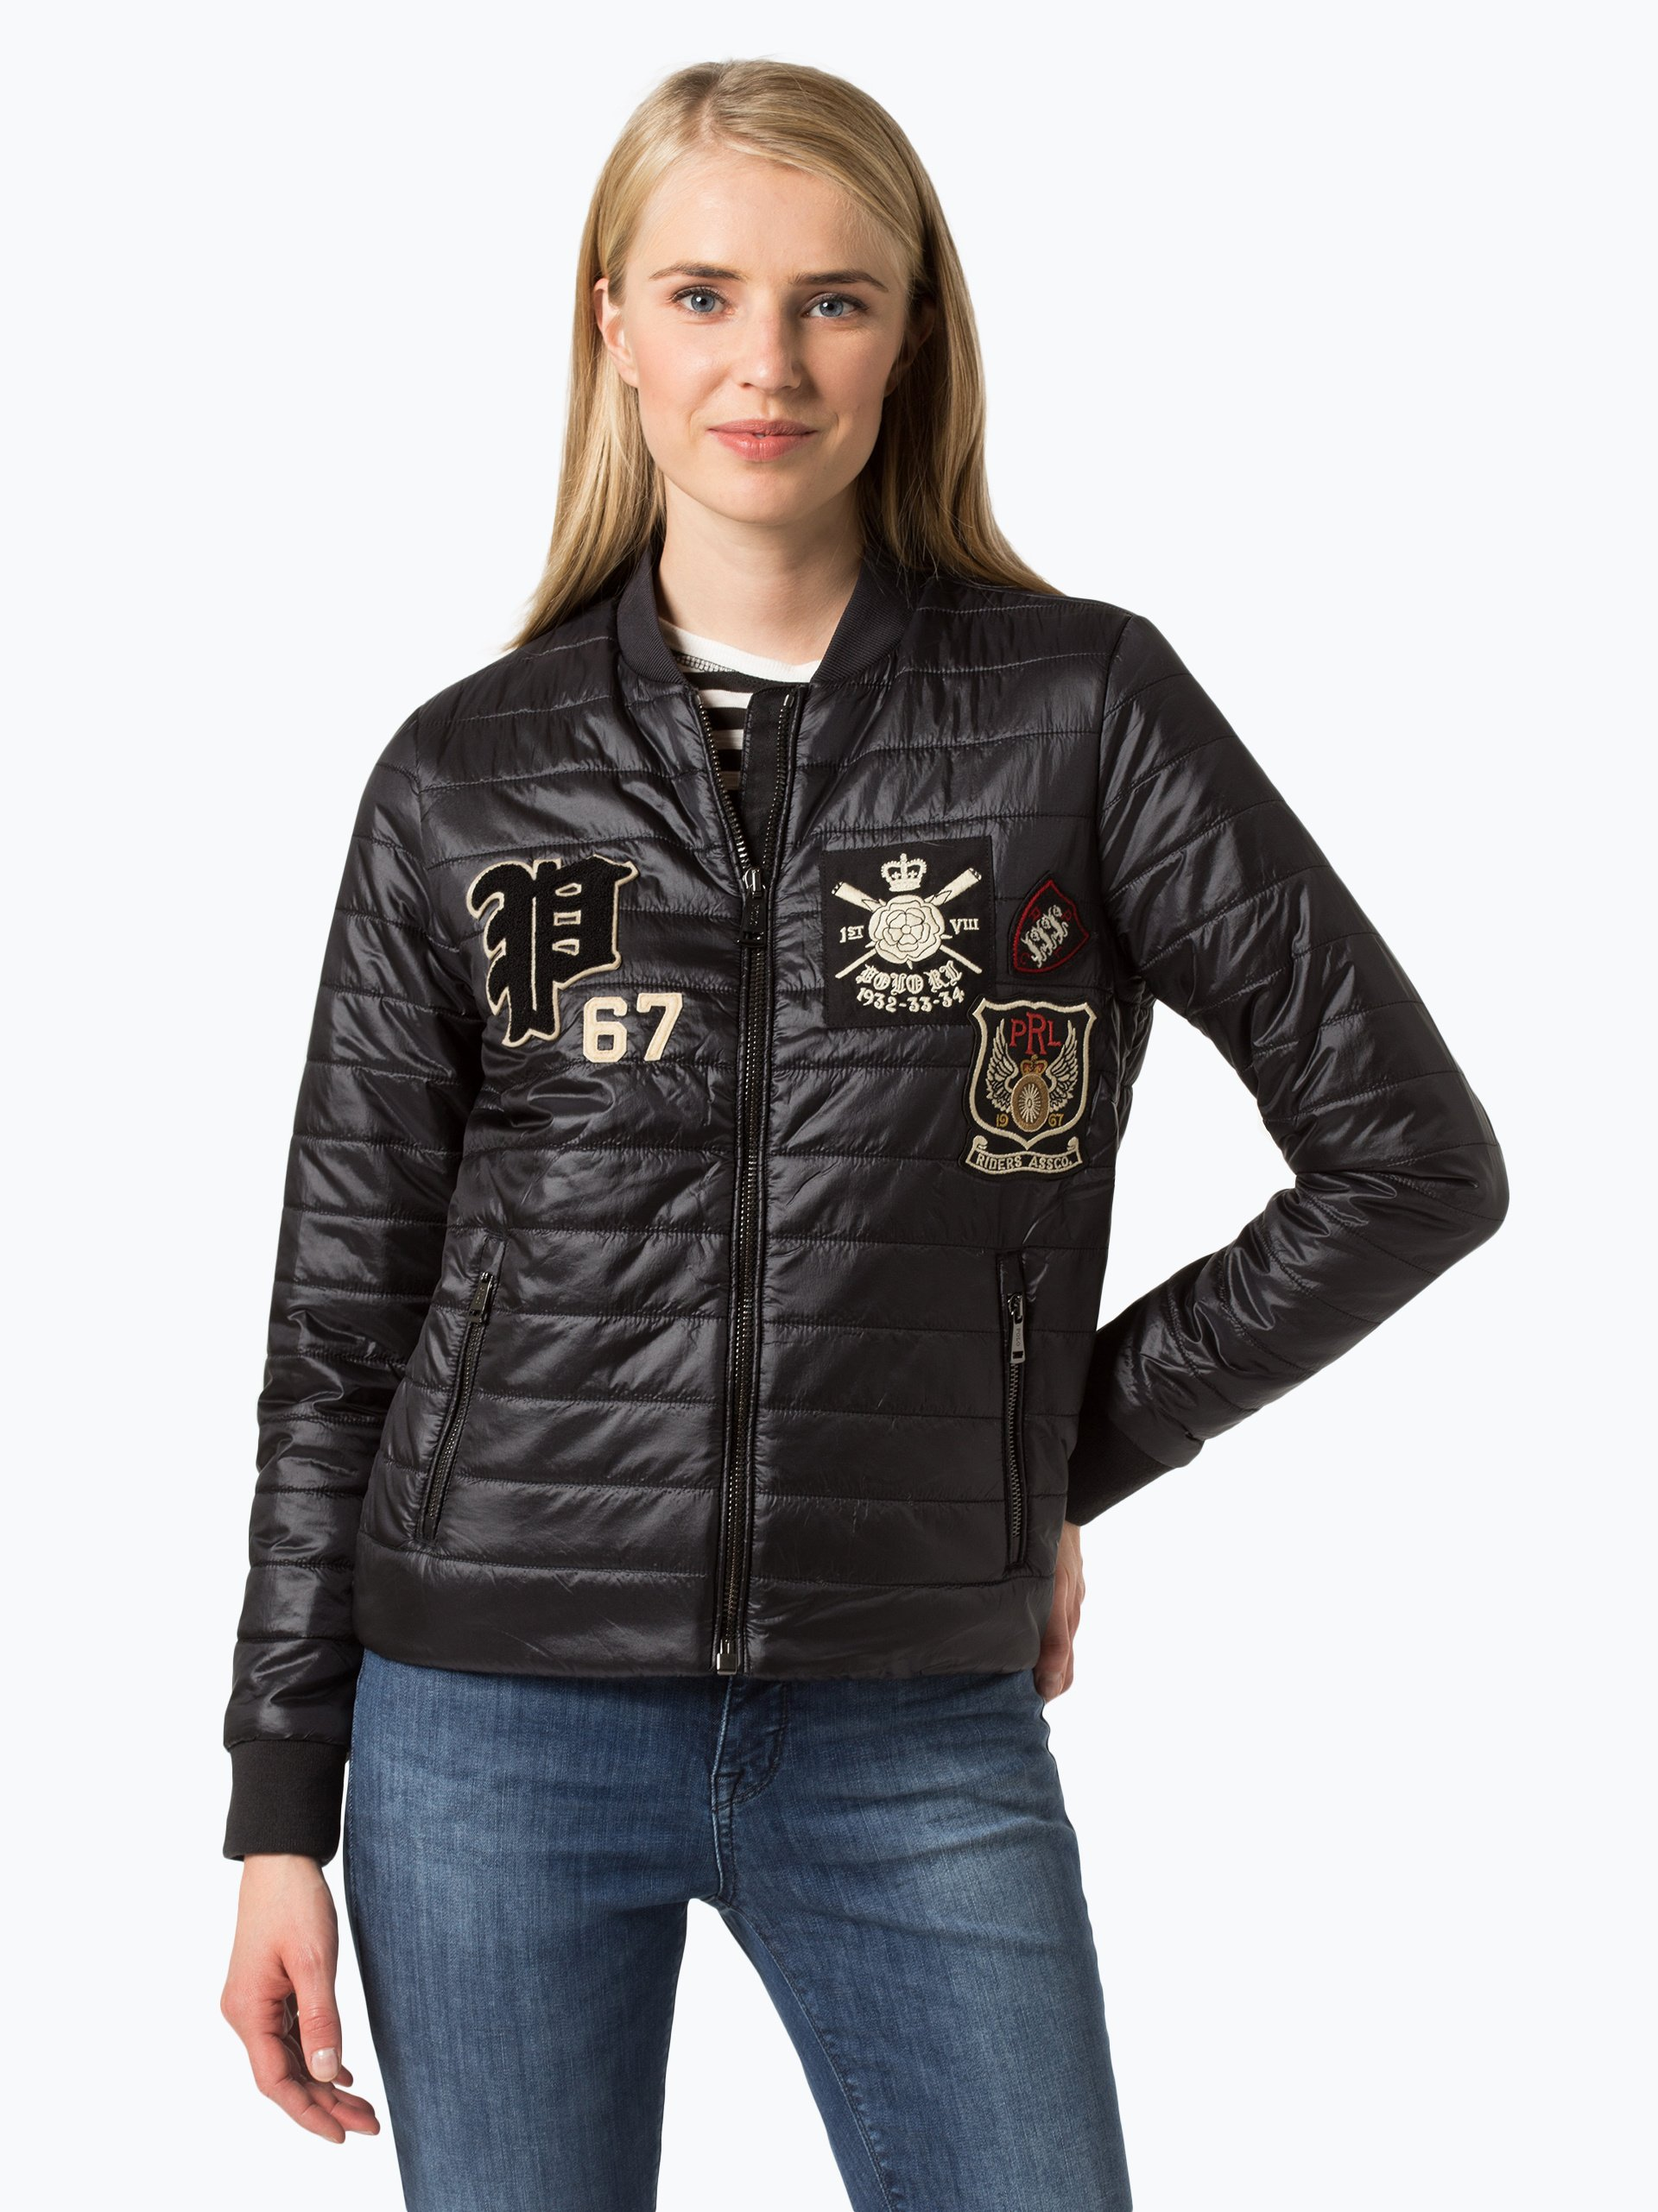 polo ralph lauren damen steppjacke online kaufen. Black Bedroom Furniture Sets. Home Design Ideas